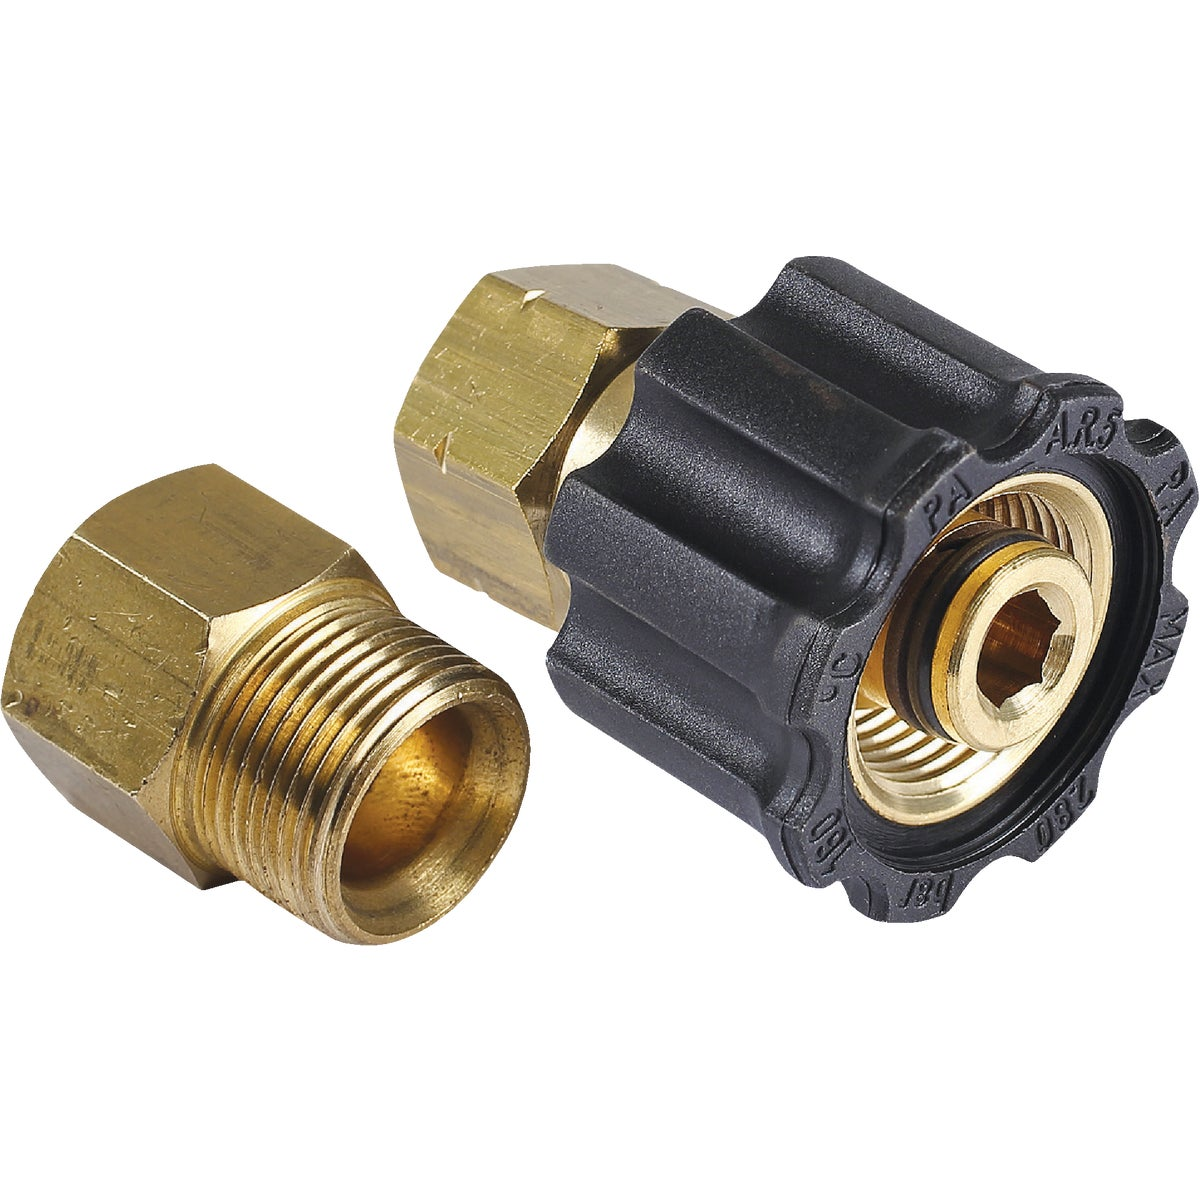 "M22X14MMX3/8"" CONNECTION"